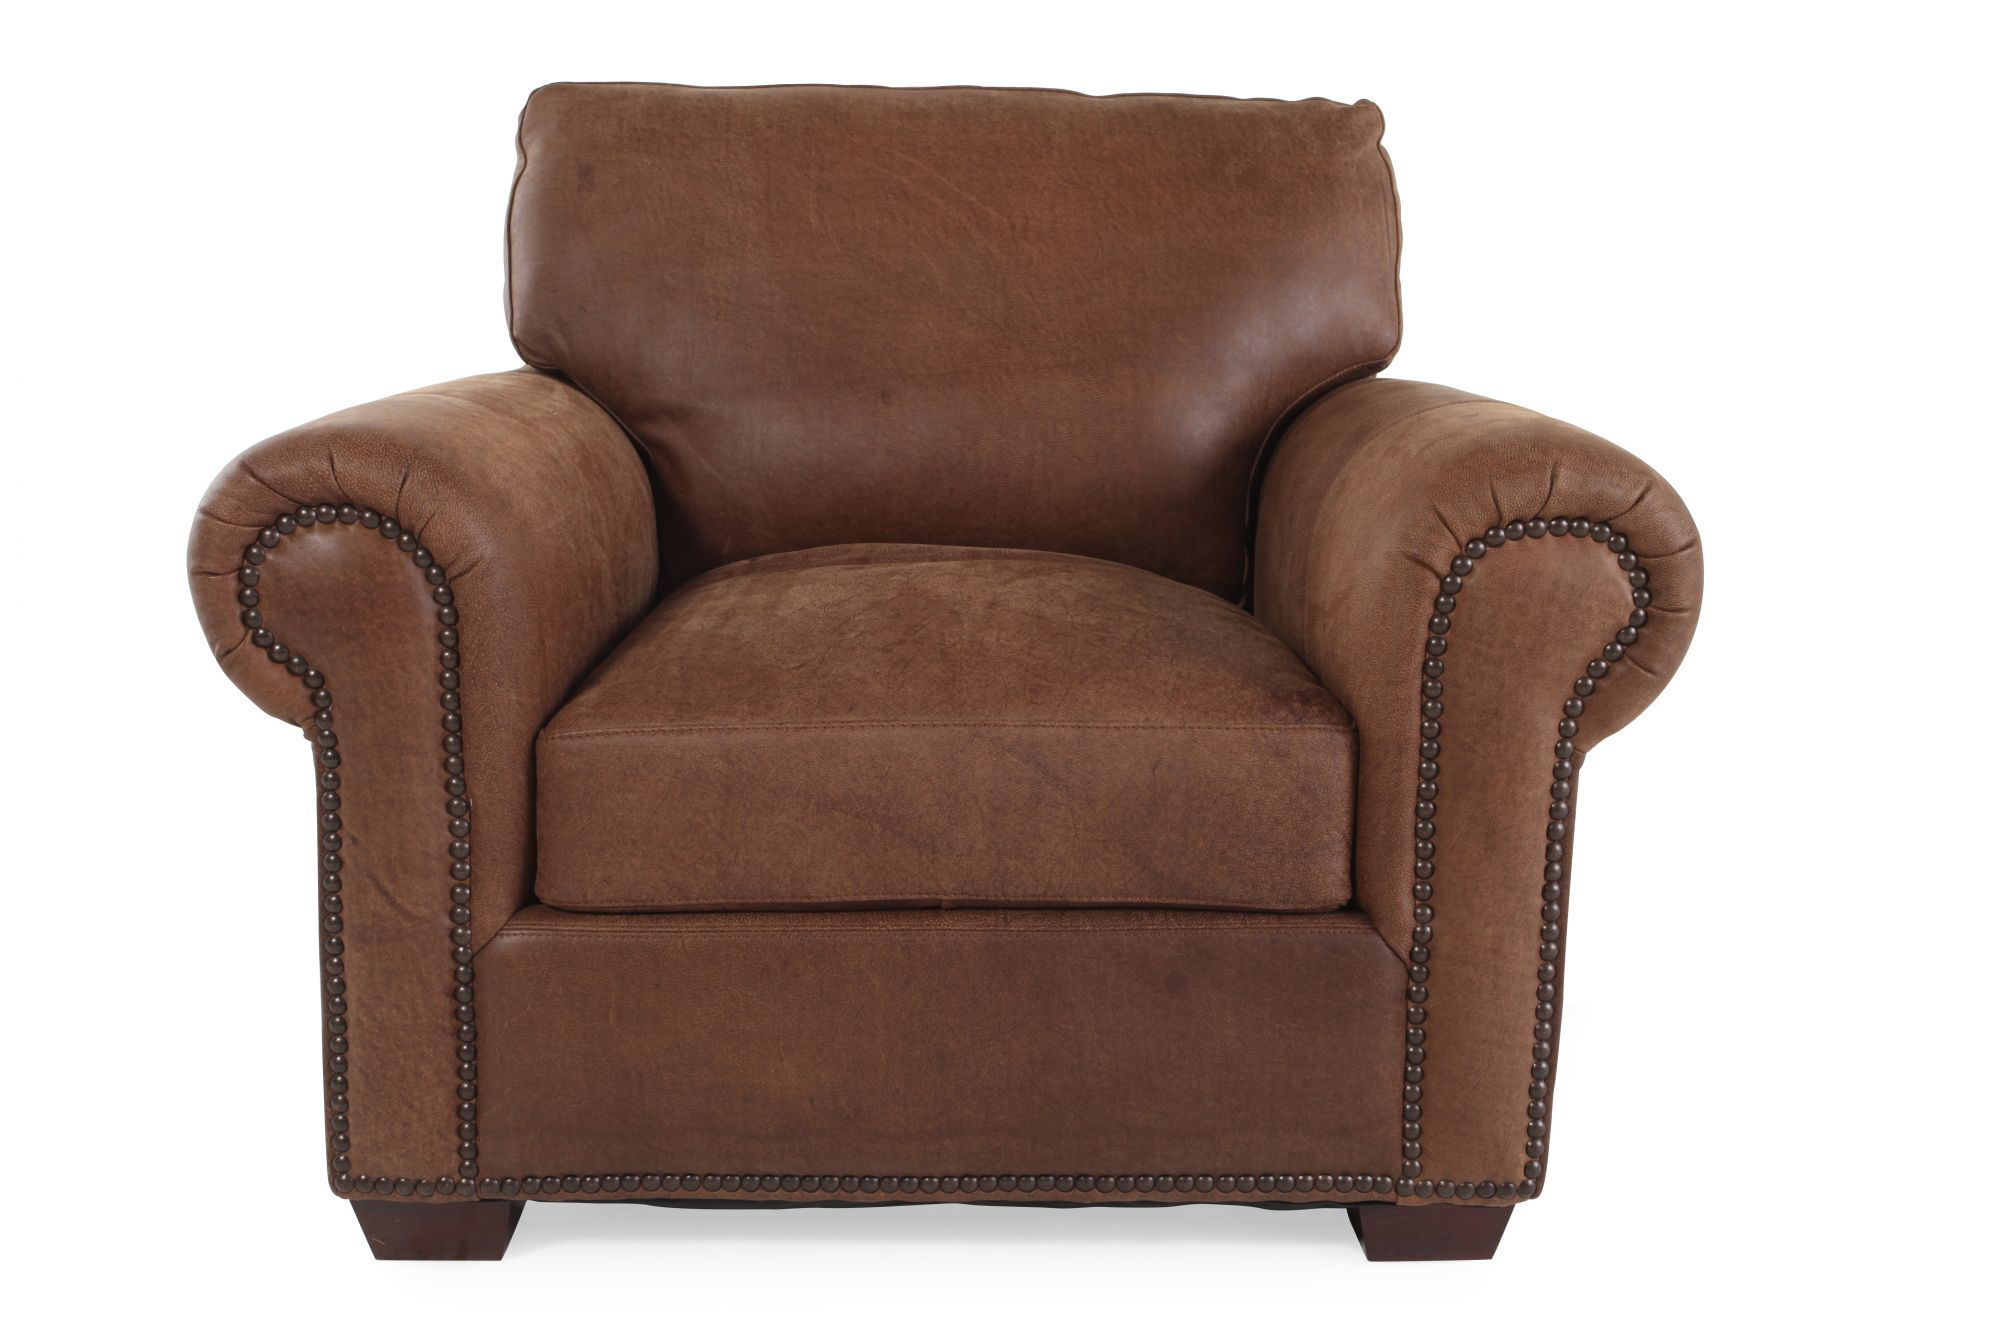 leather safari chair amish rocking cushions usa chaps mathis brothers furniture